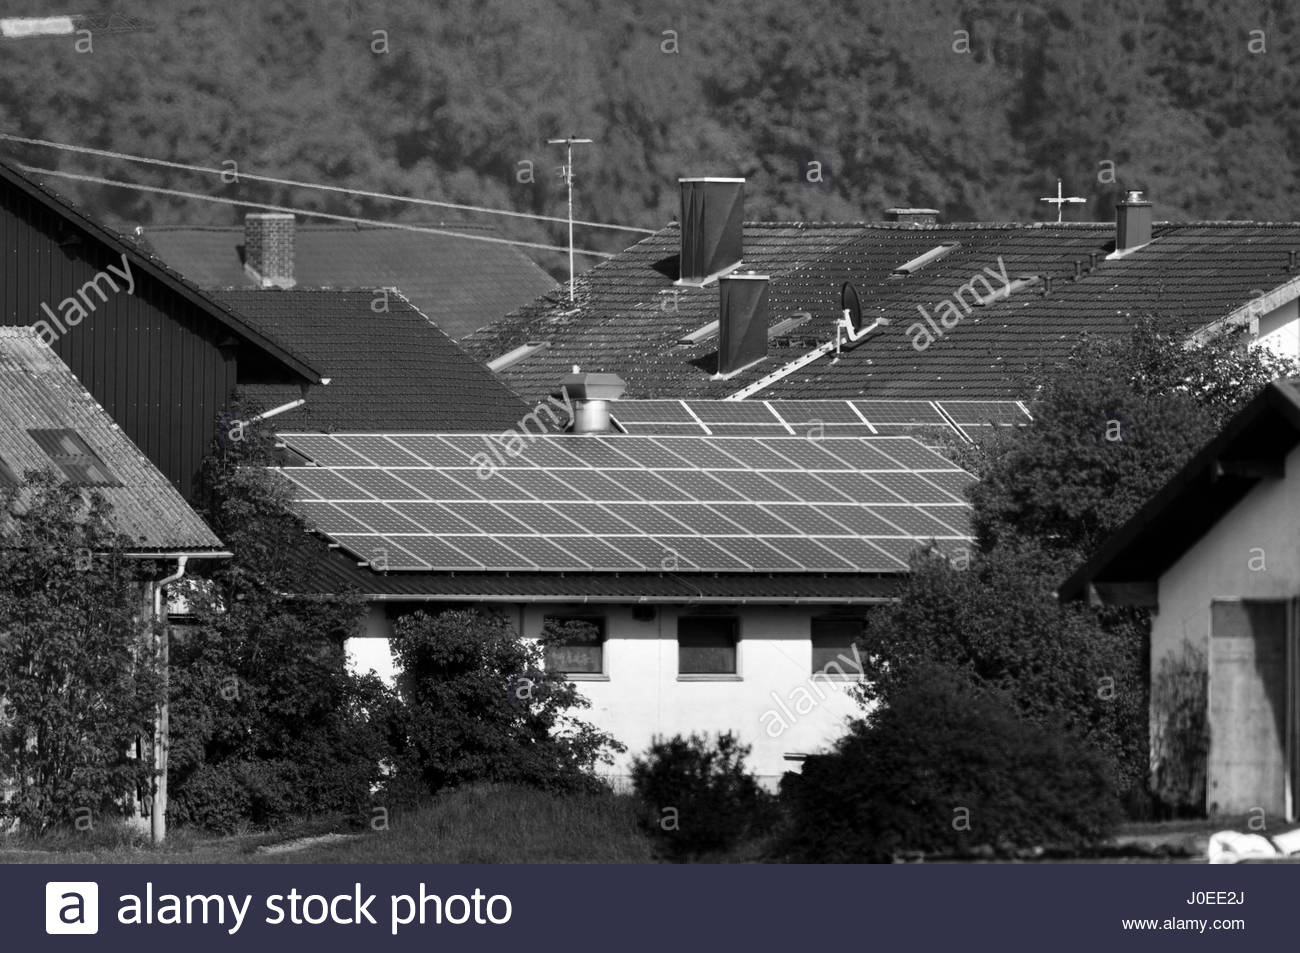 Europe, Germany, Bavaria, View Of Solar Panels On Roof Of Private House - Stock Image